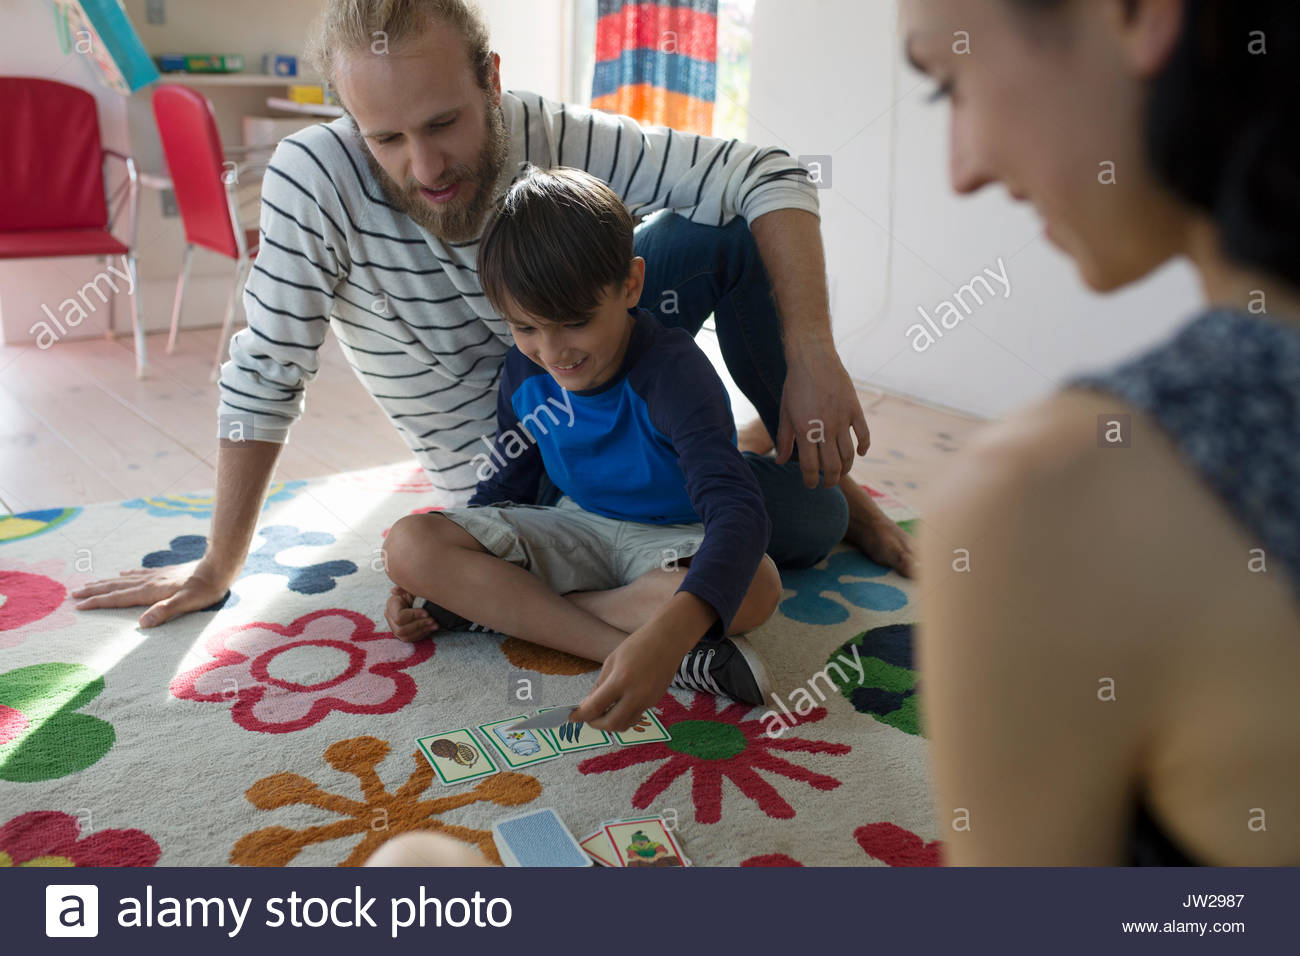 Family playing card game on pattern rug - Stock Image